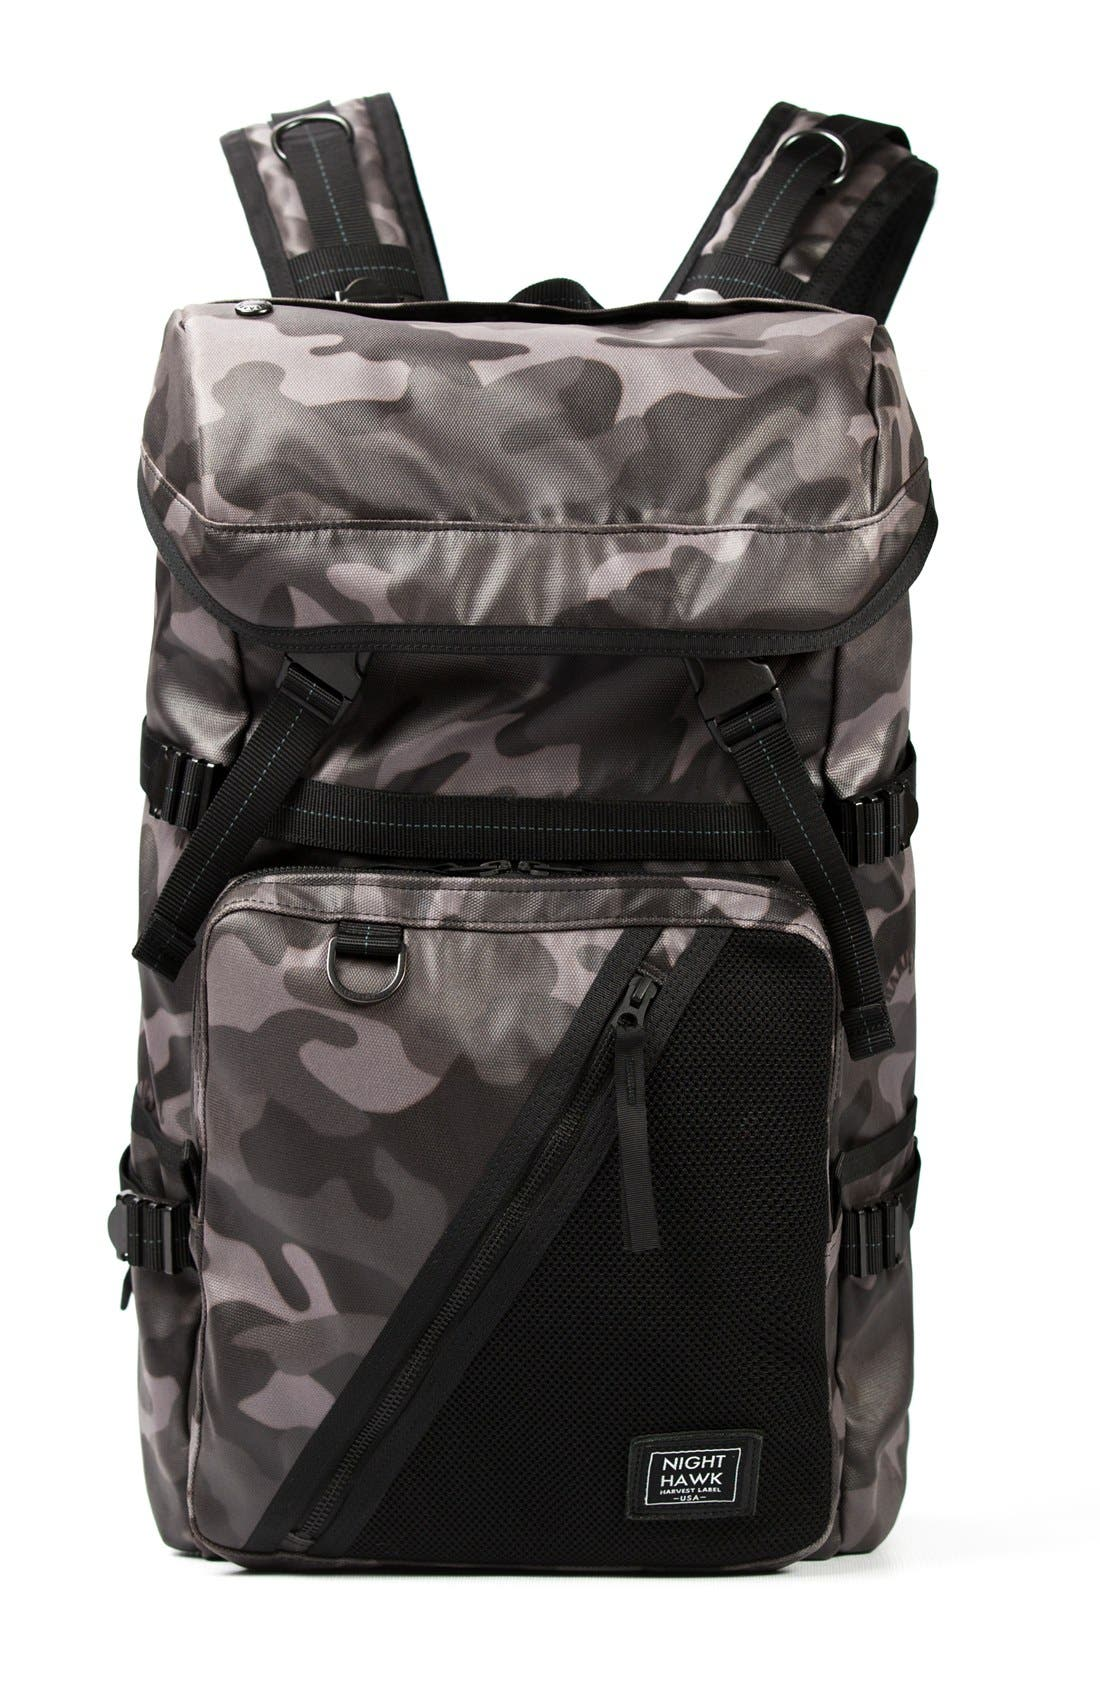 HARVEST LABEL NightHawk Backpack